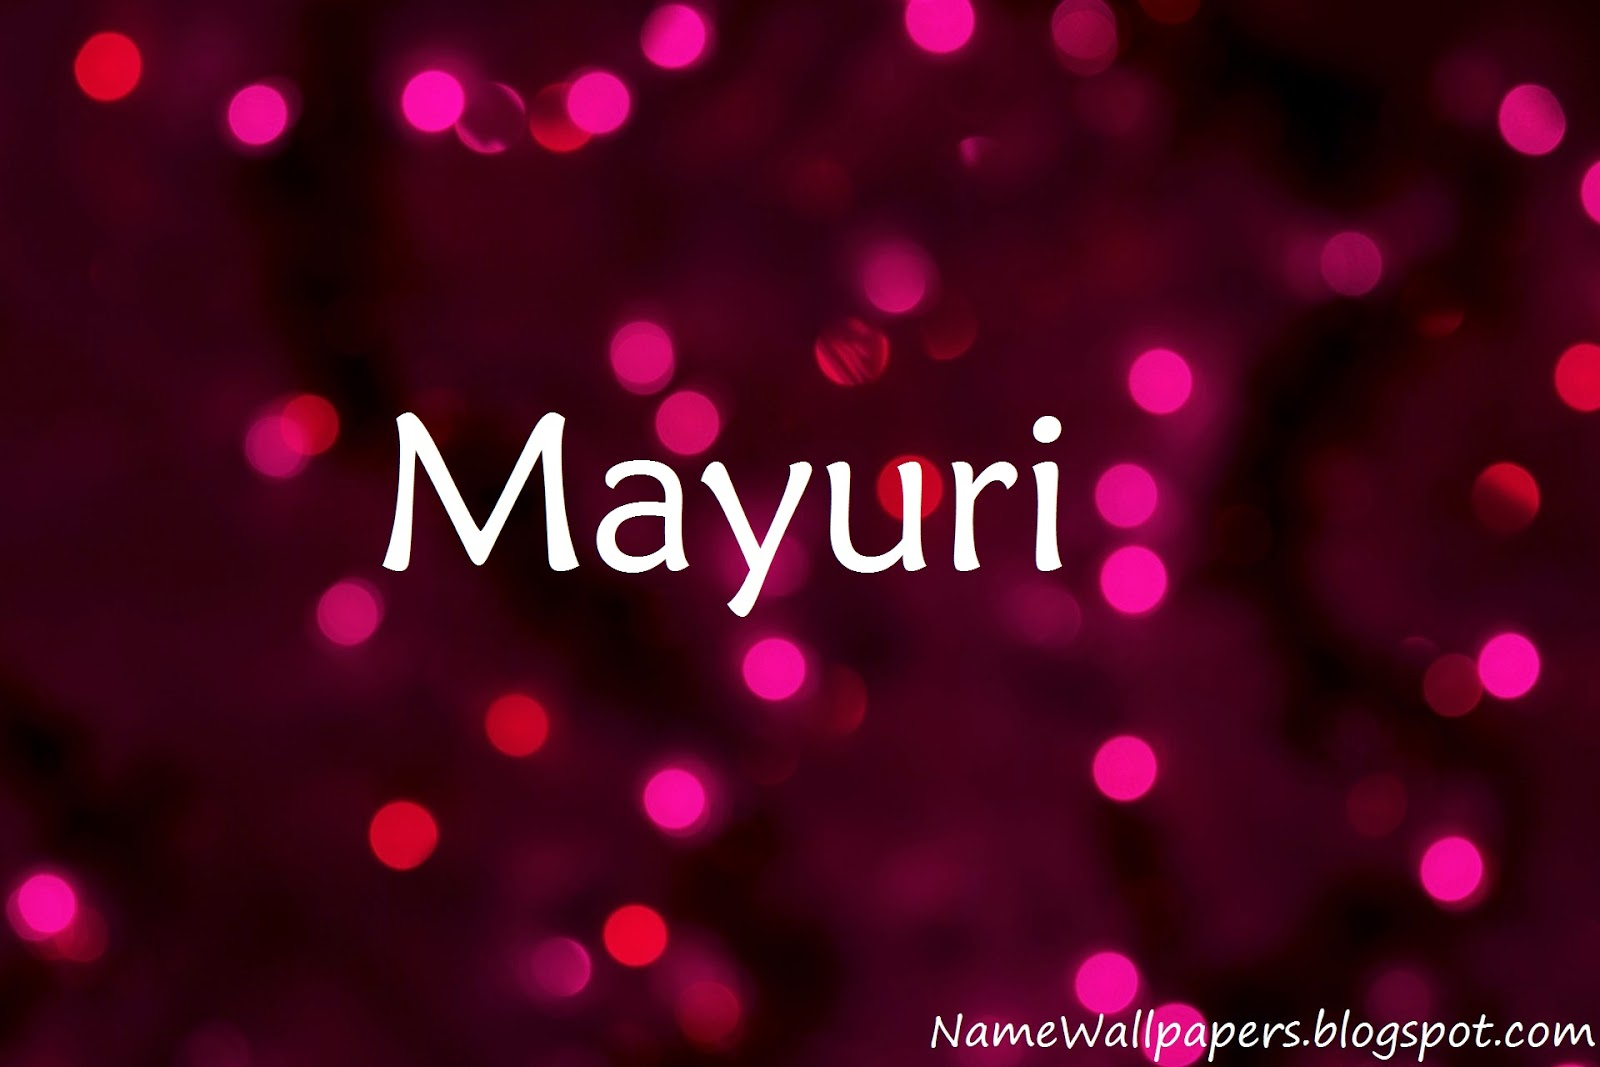 Nature Wallpaper Full Hd National Geographic Download Mayuri Name Wallpaper Gallery